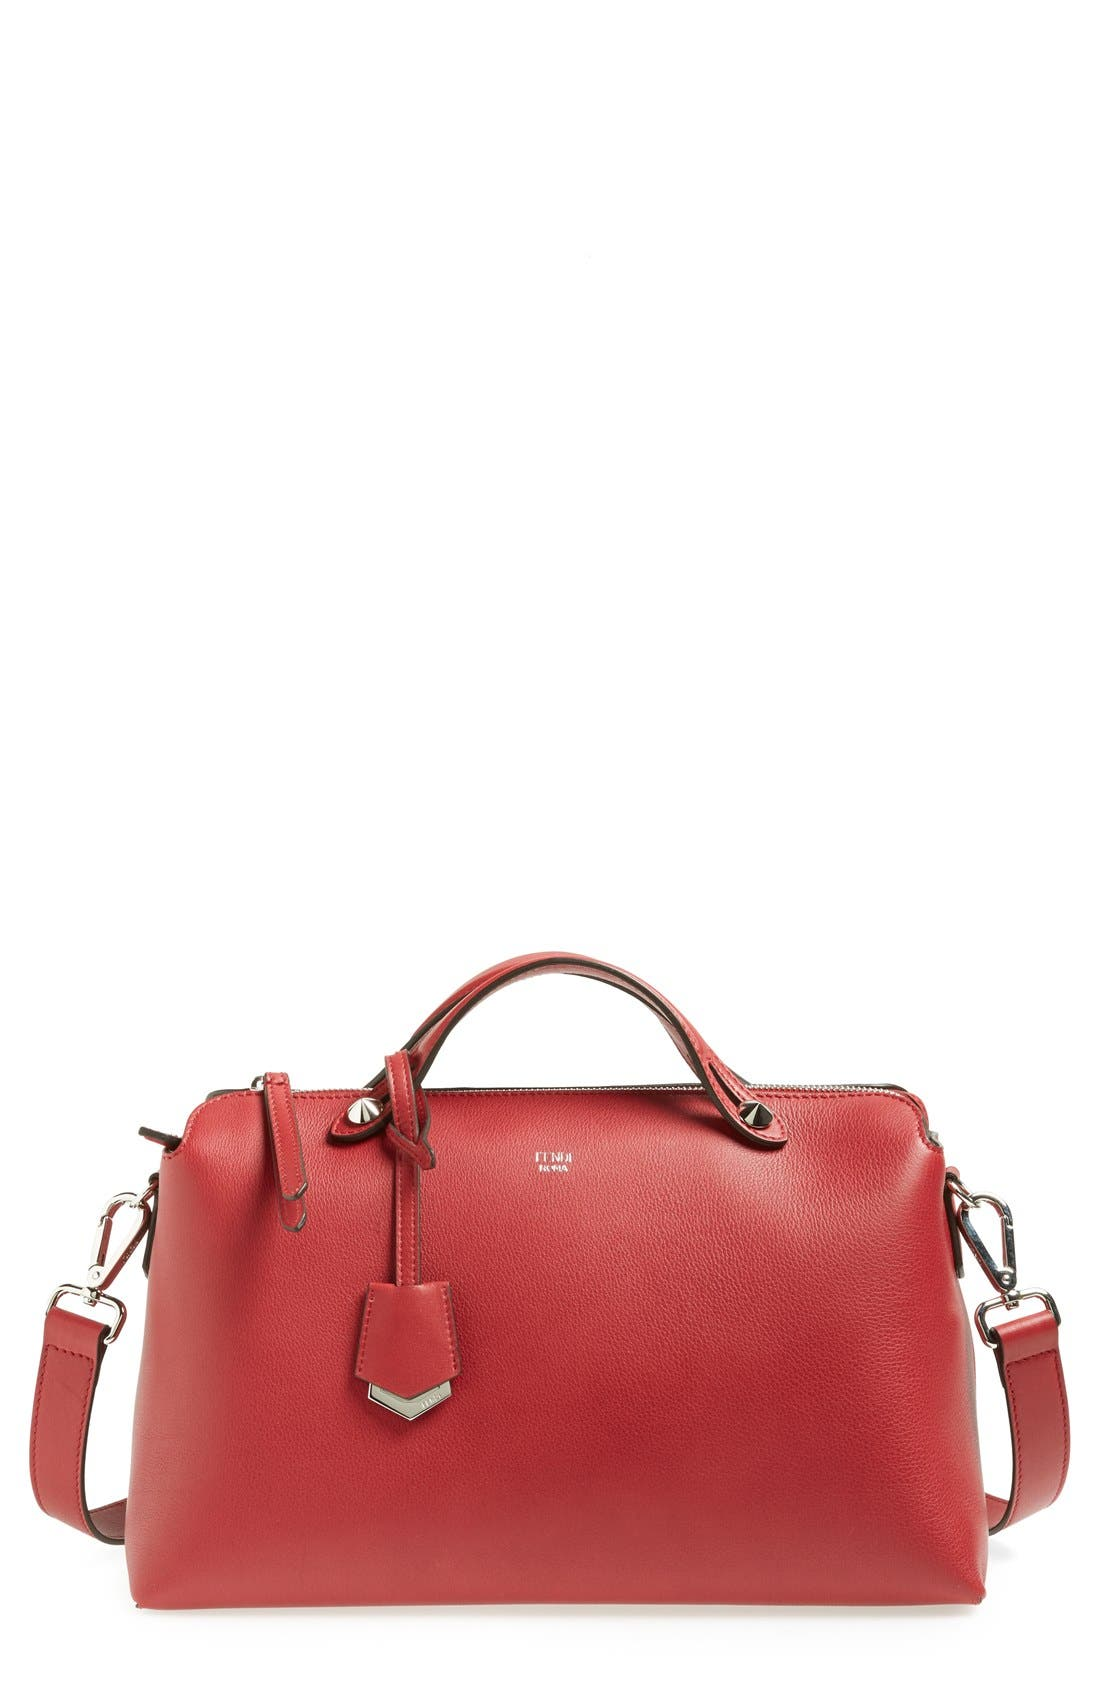 Alternate Image 1 Selected - Fendi 'Bauletto Grande' Leather Shoulder Bag